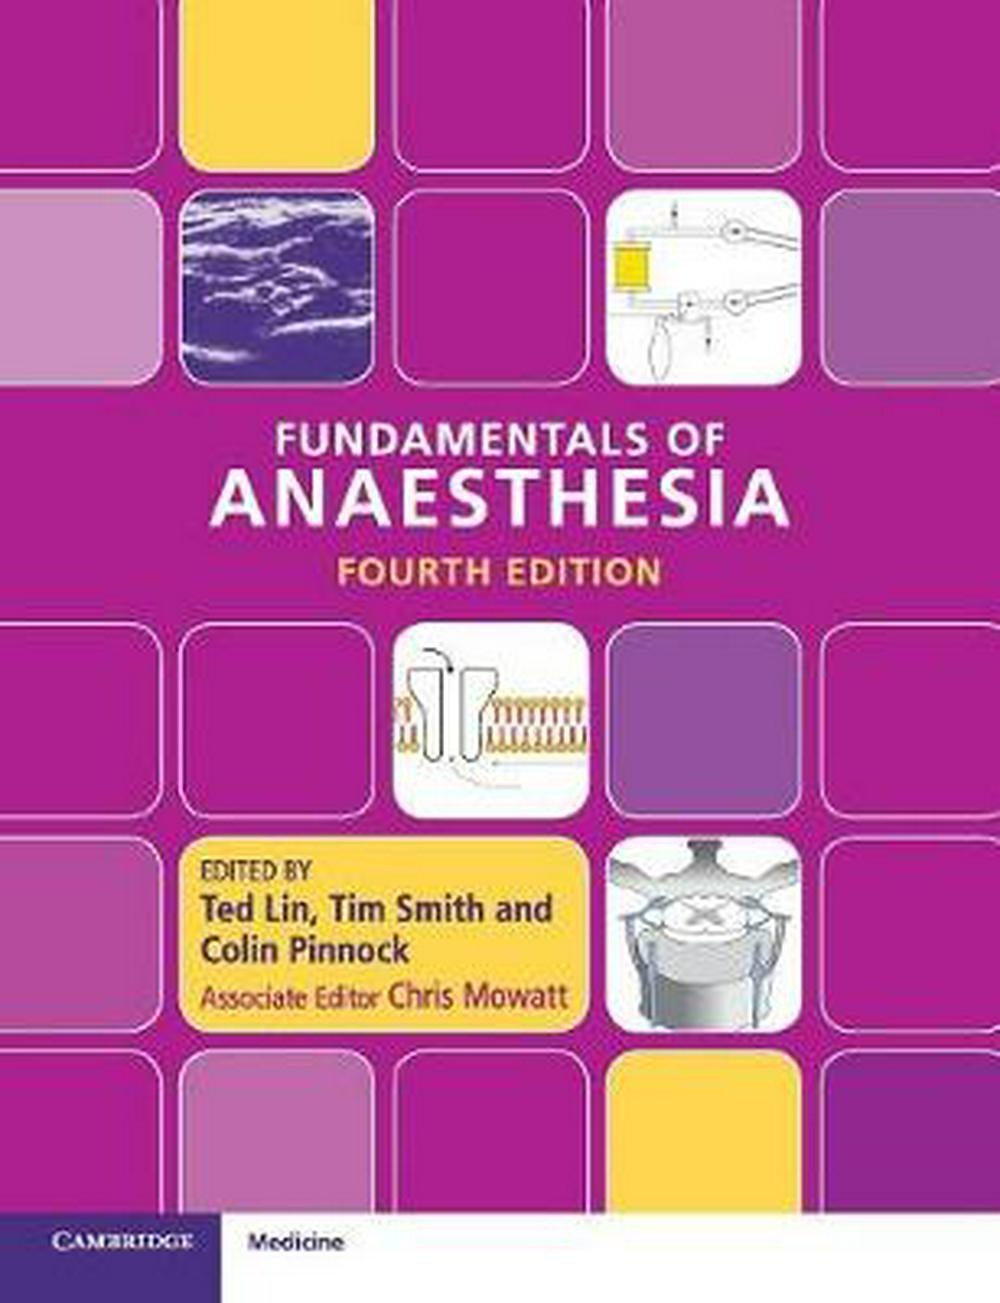 Fundamentals of Anaesthesia by Ted Lin, Tim Smith, Colin Pinnock, ISBN: 9781107612389